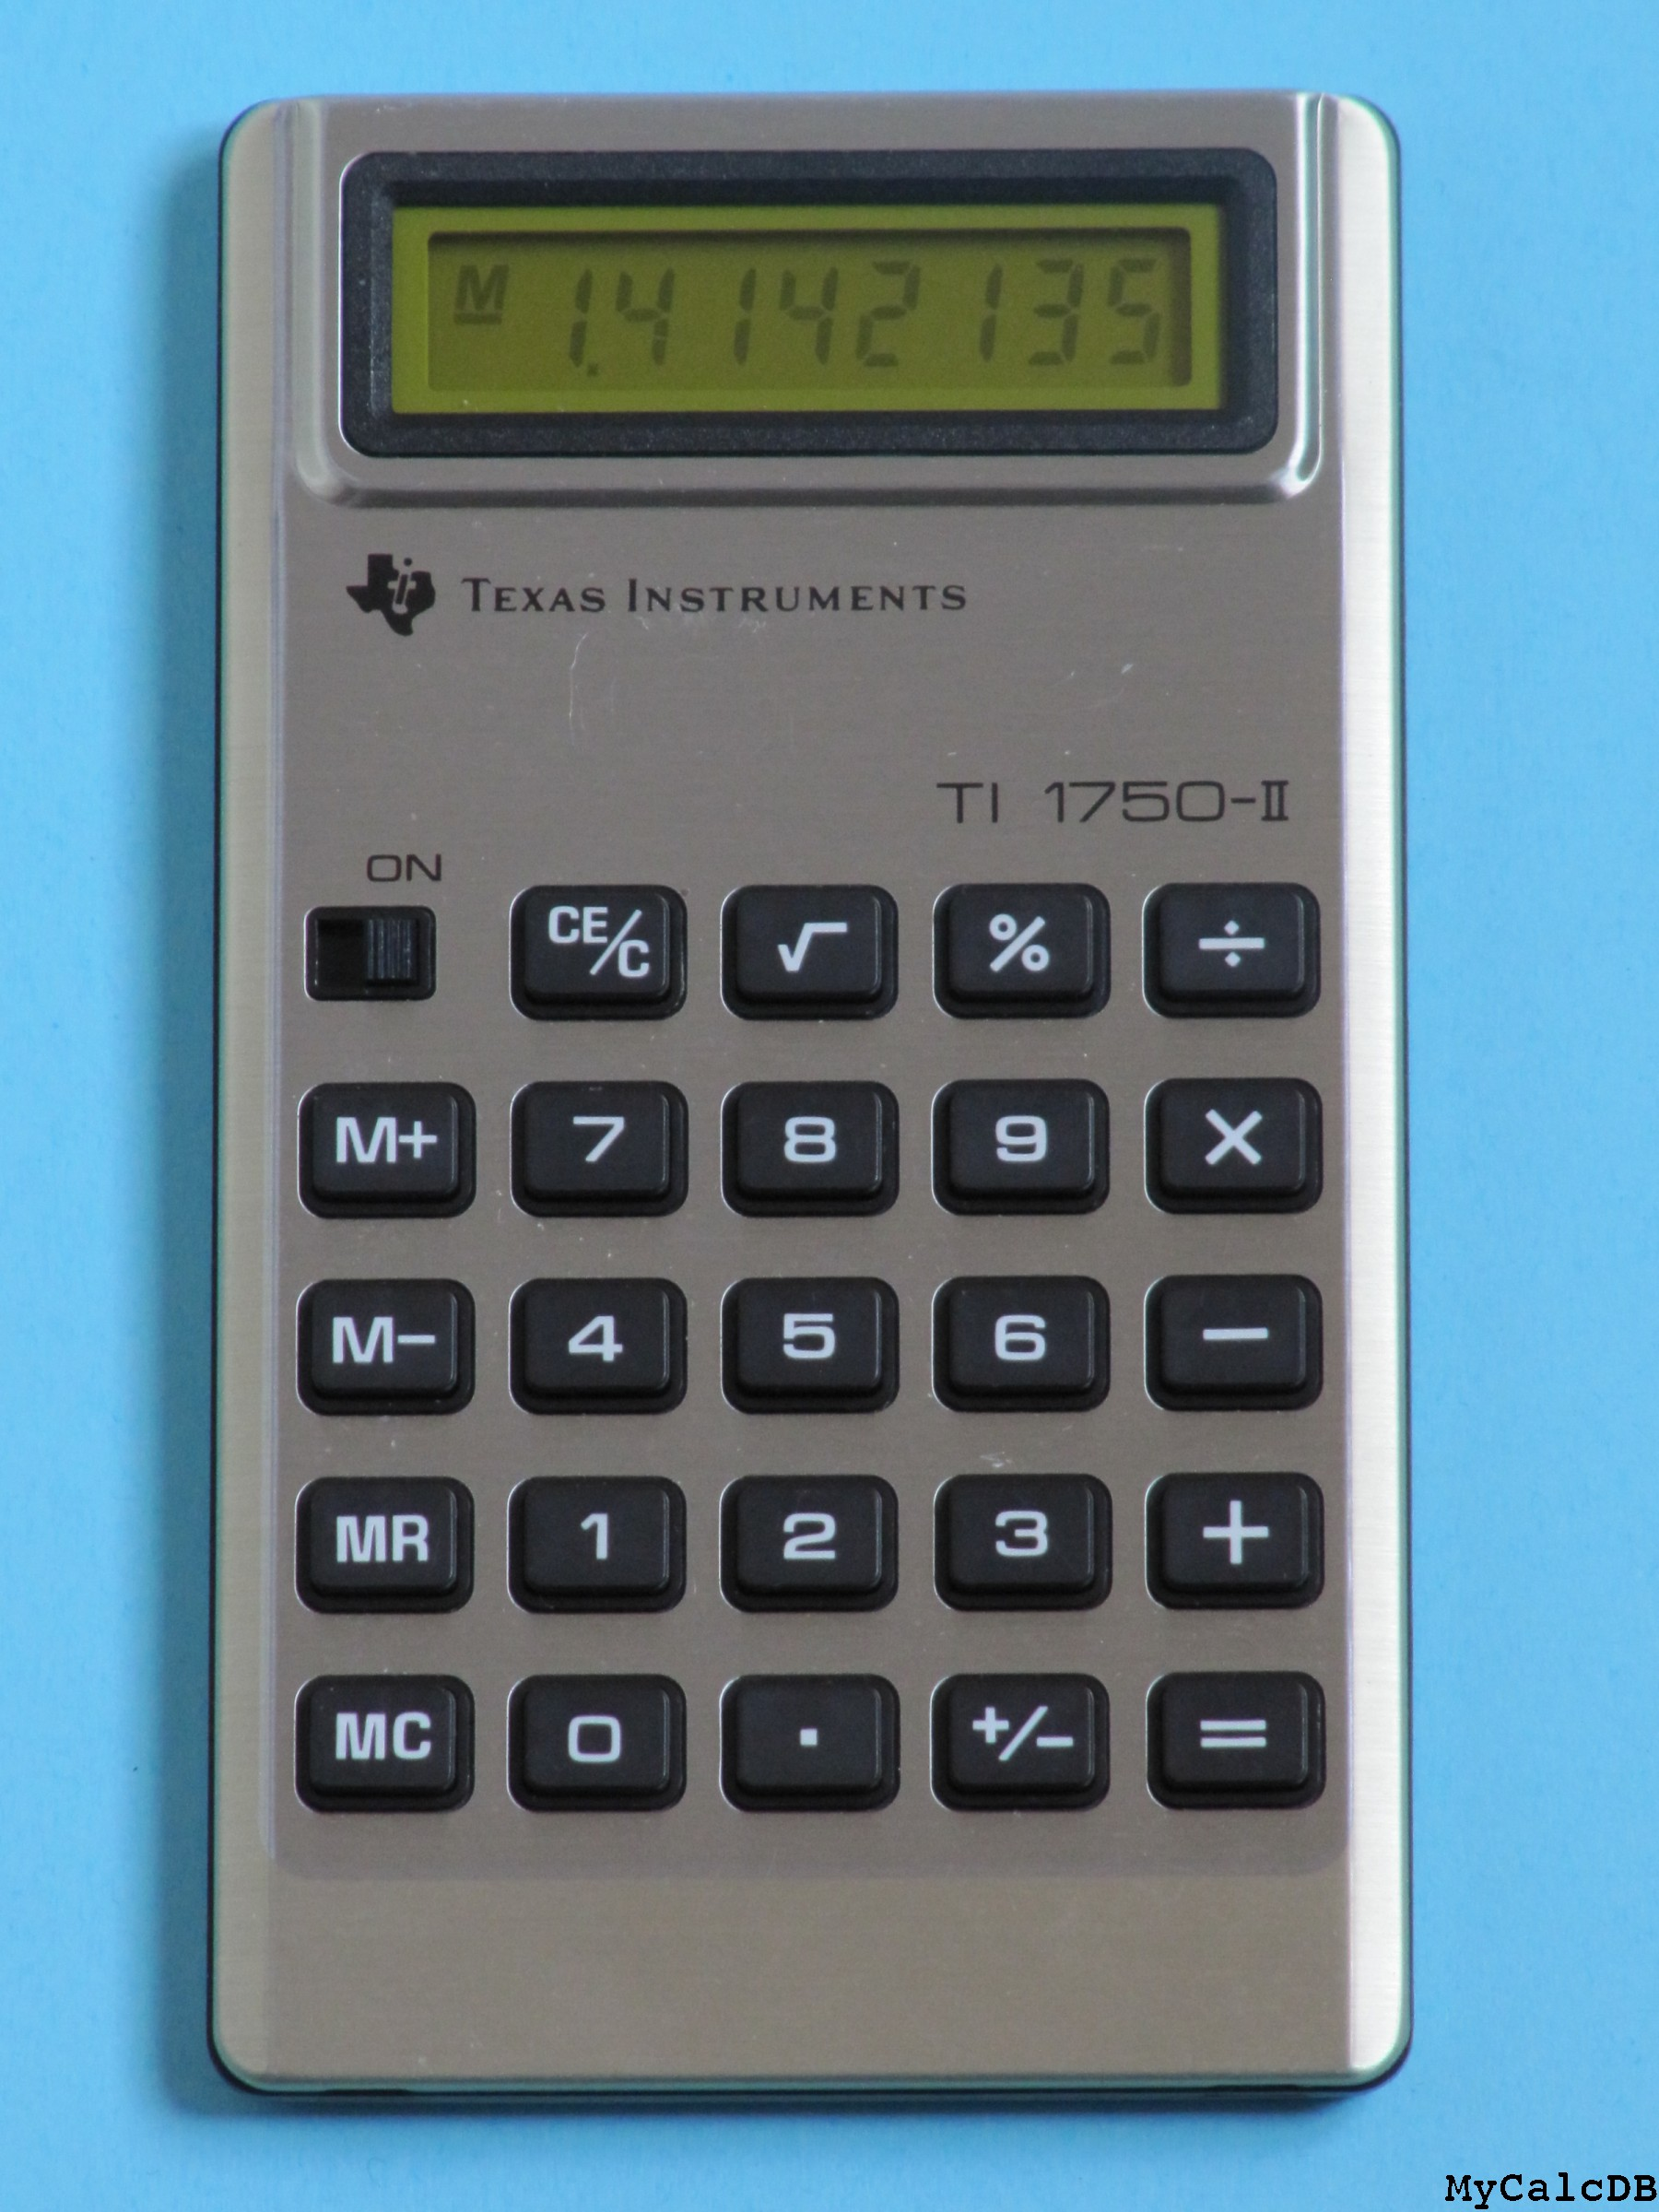 Texas Instruments TI 1750-II